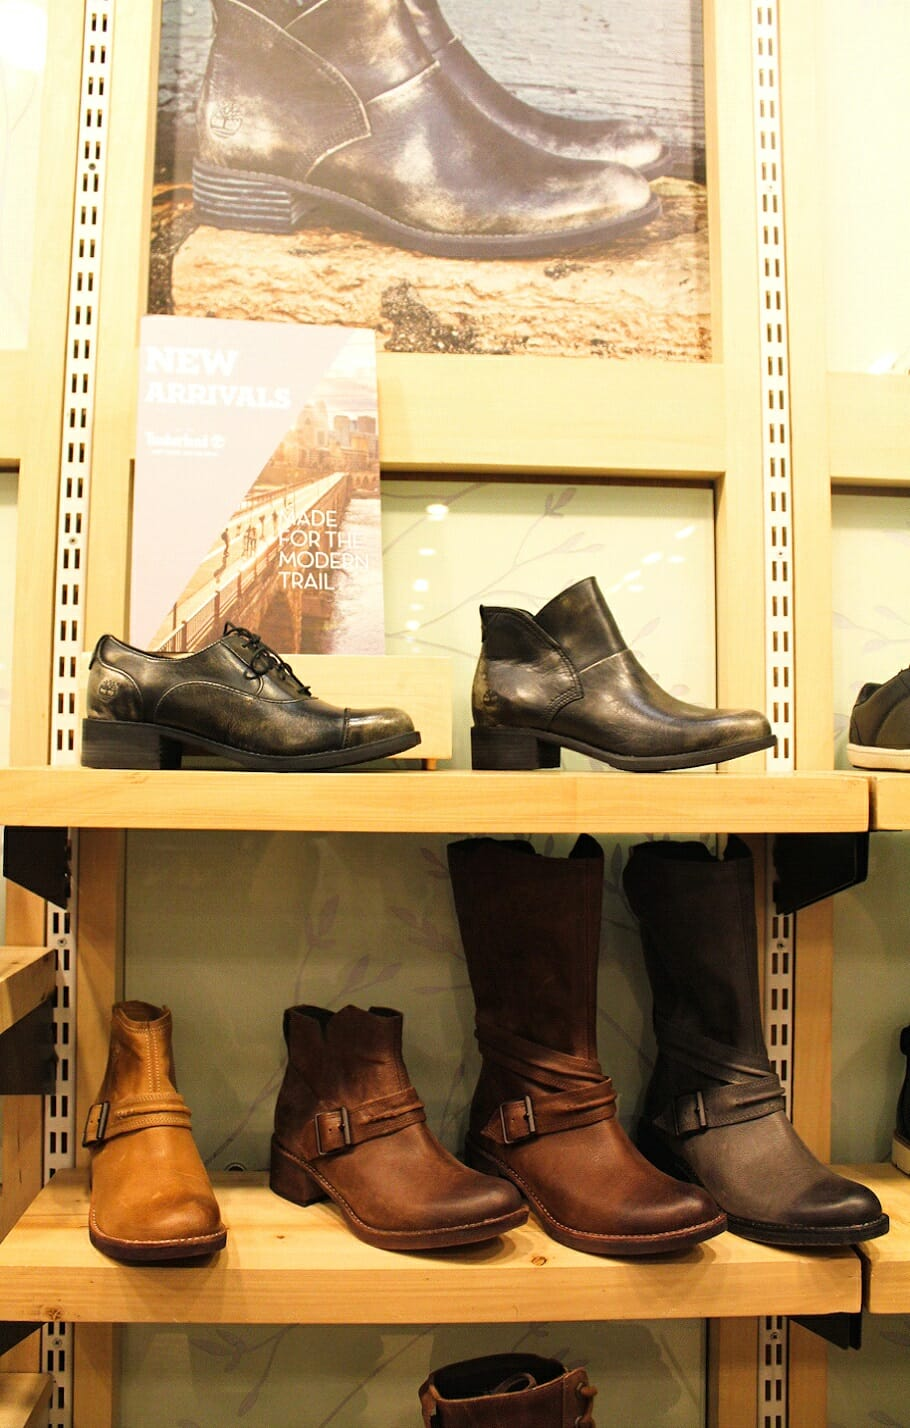 Top left: The Beckwith Leather Oxfords offers a unique gunmetal finish on polished leather.